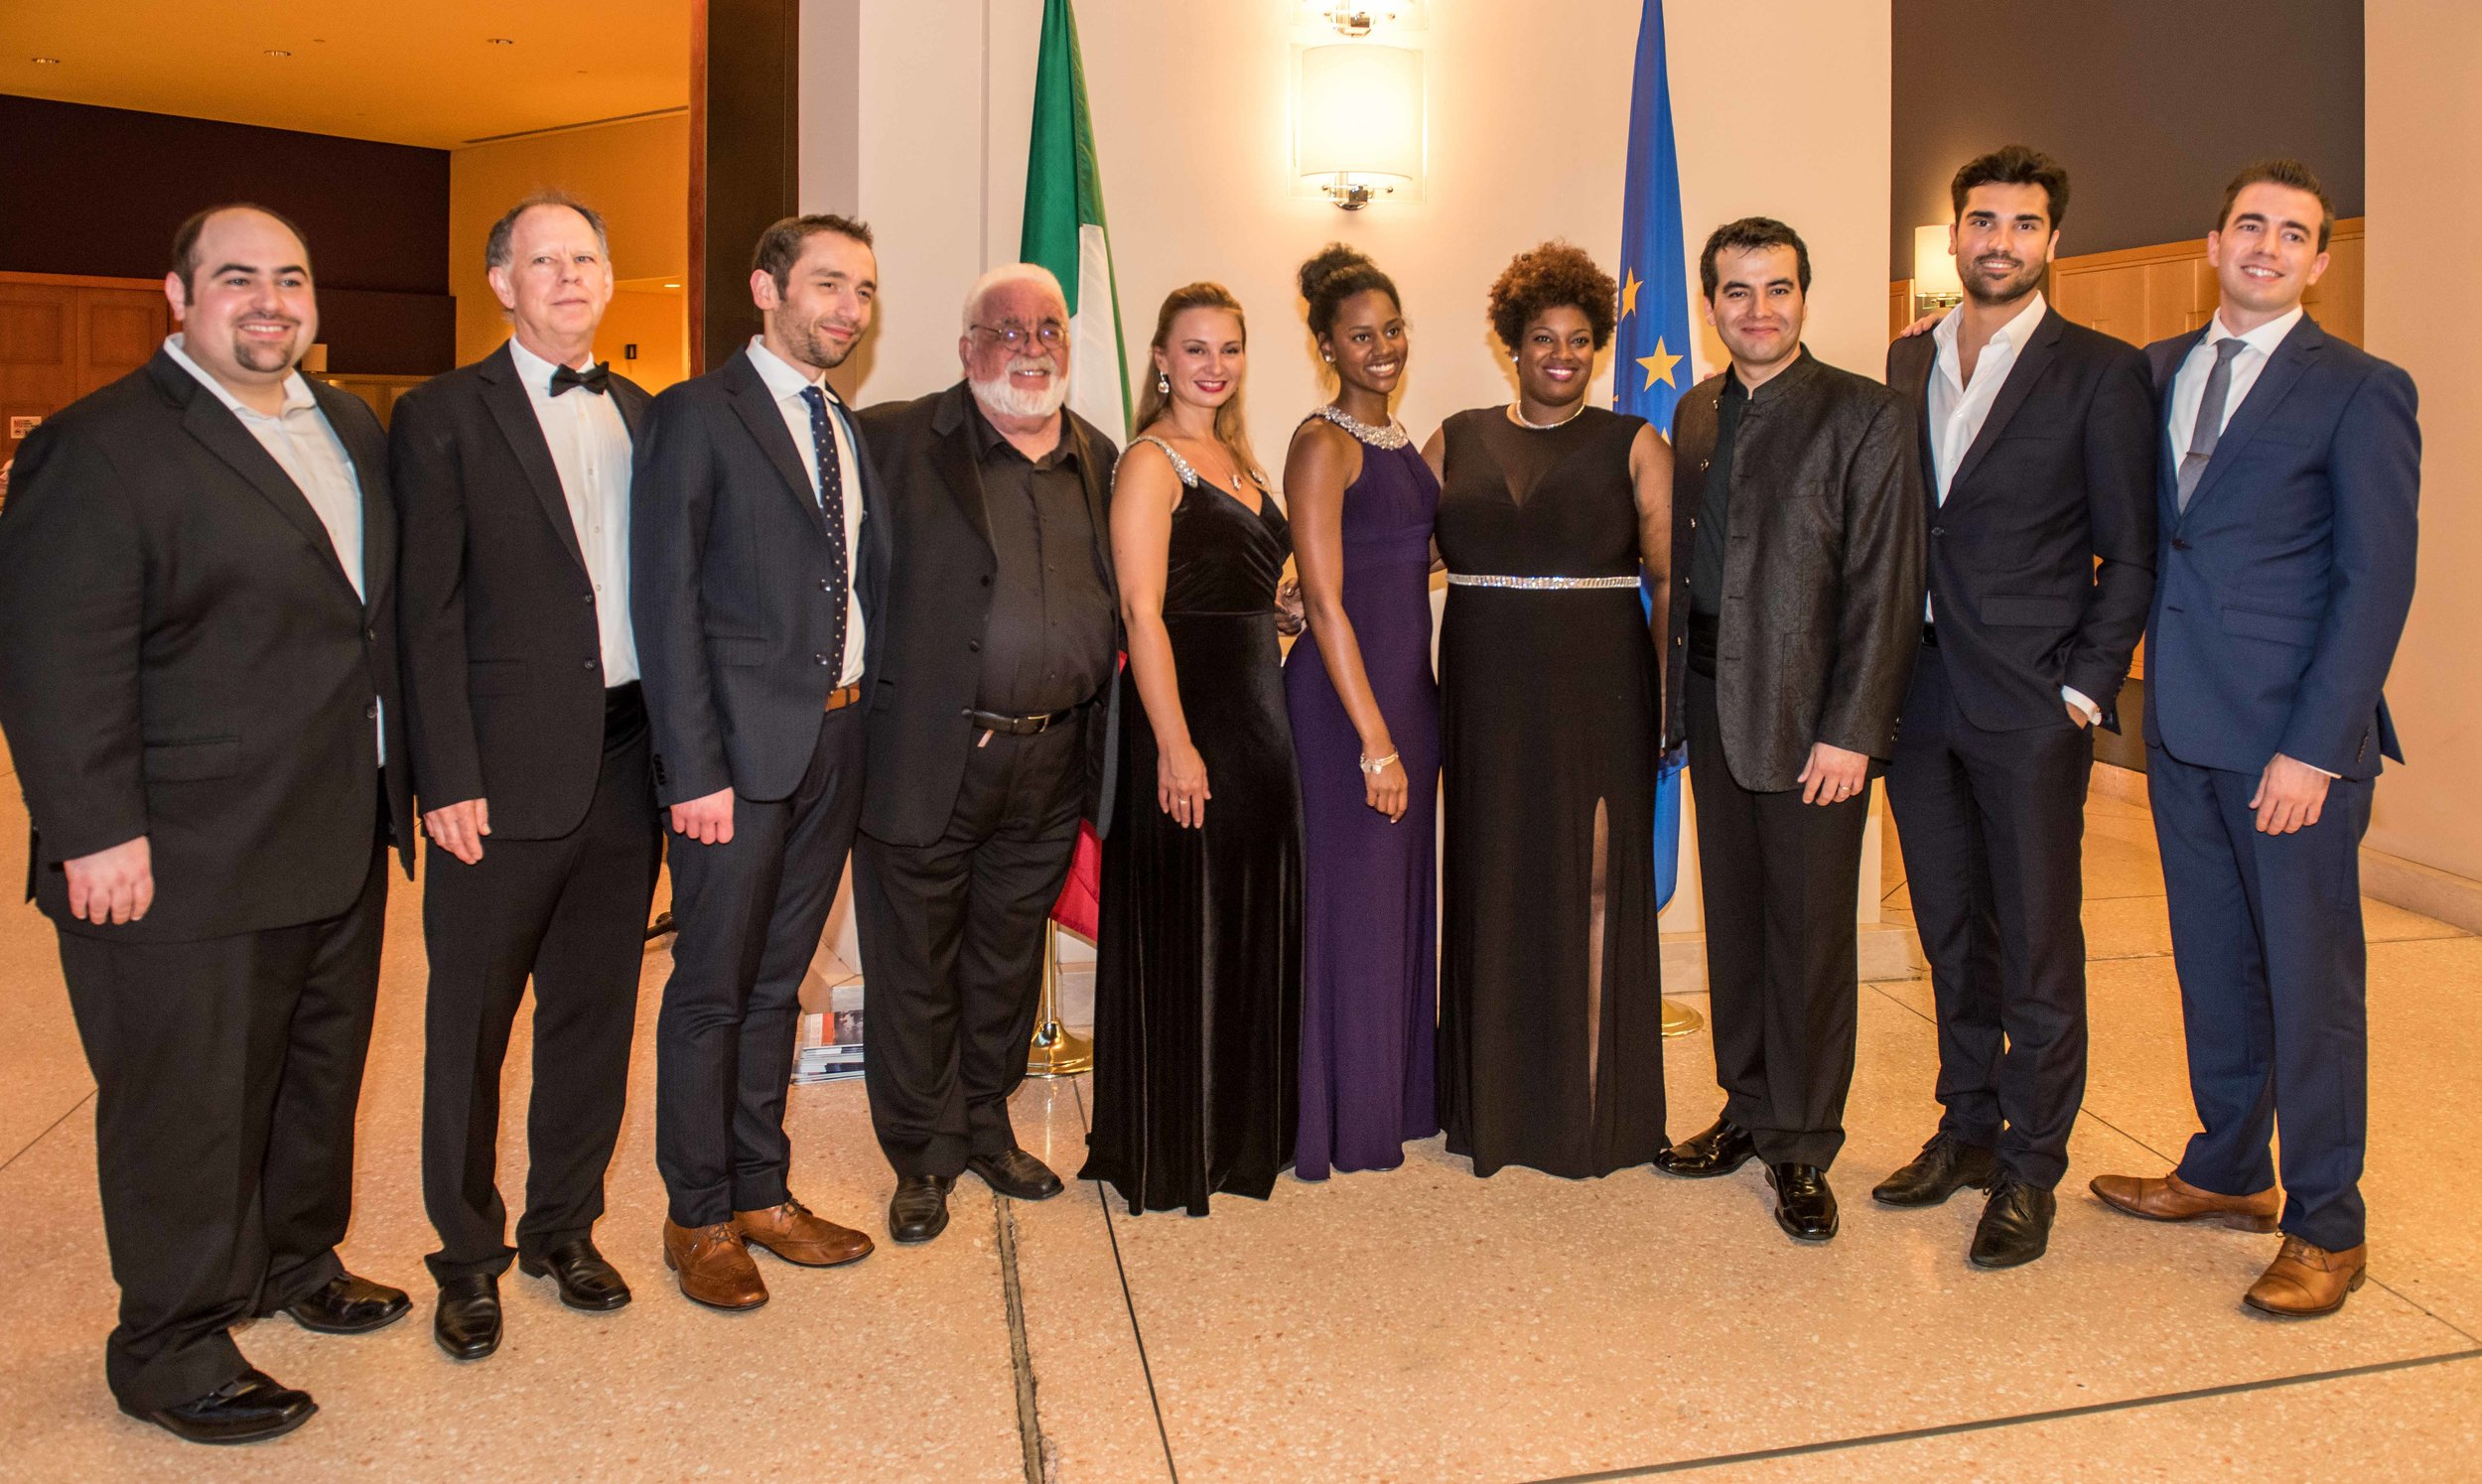 Left to Right: Matthew Woorman, Brad Clark, Emanuele Amendola, Louis Salemno, Yulia Petrachuk, Simone Brown, Symone Harcum, Javier Arrey, Jonathan Tetelman, Christopher Koelzer